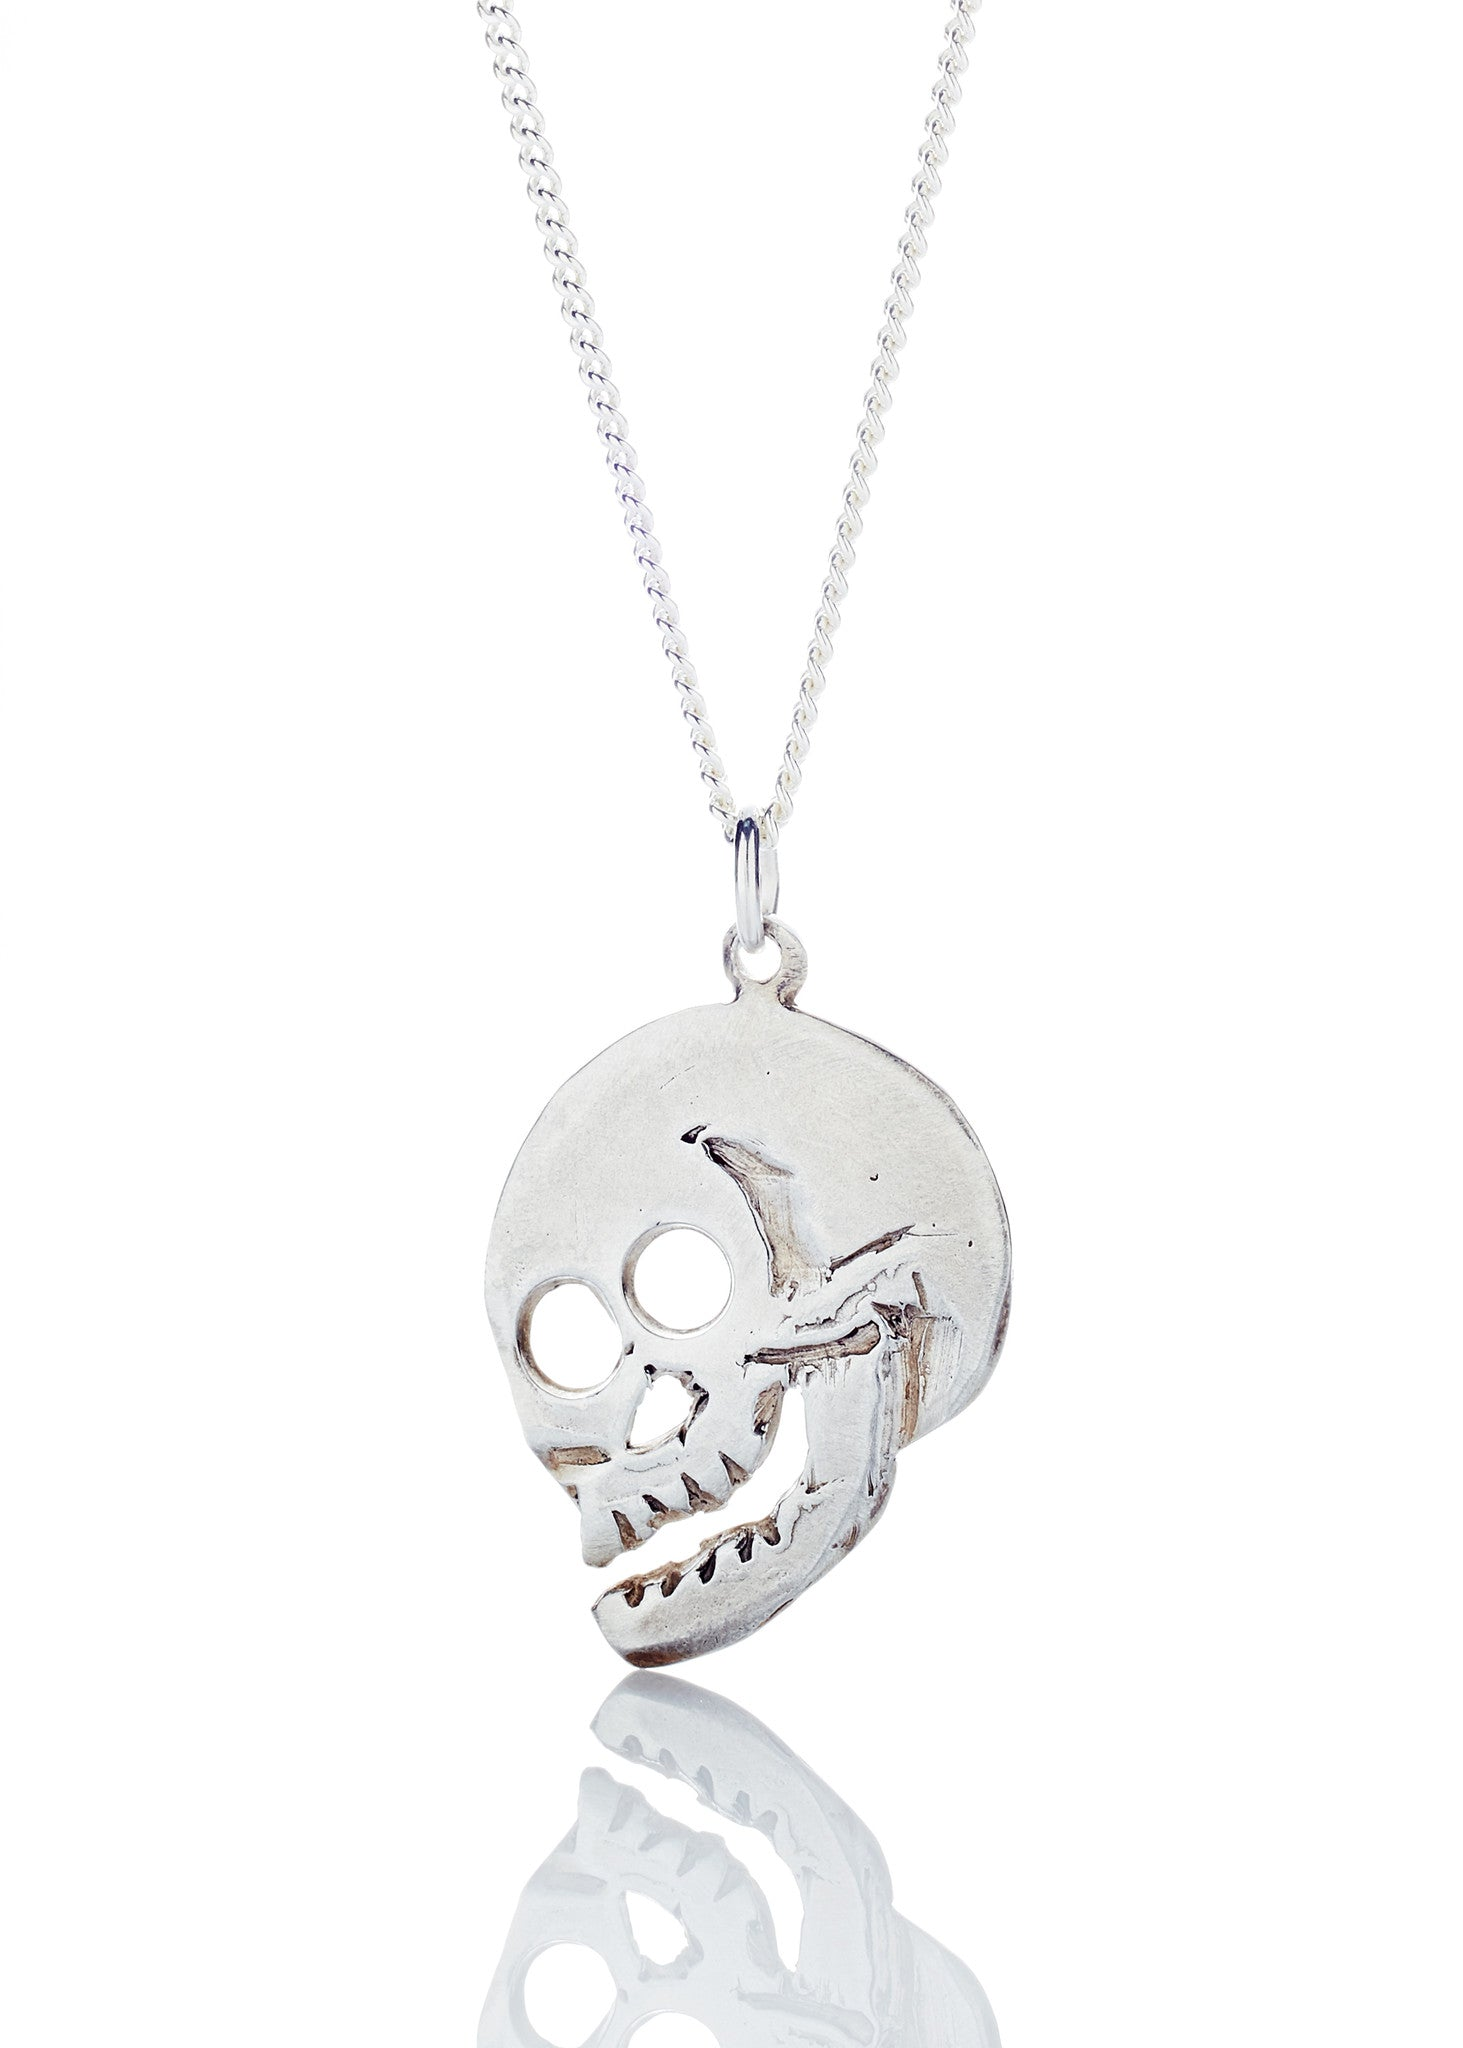 laughing skull necklace in sterling silver